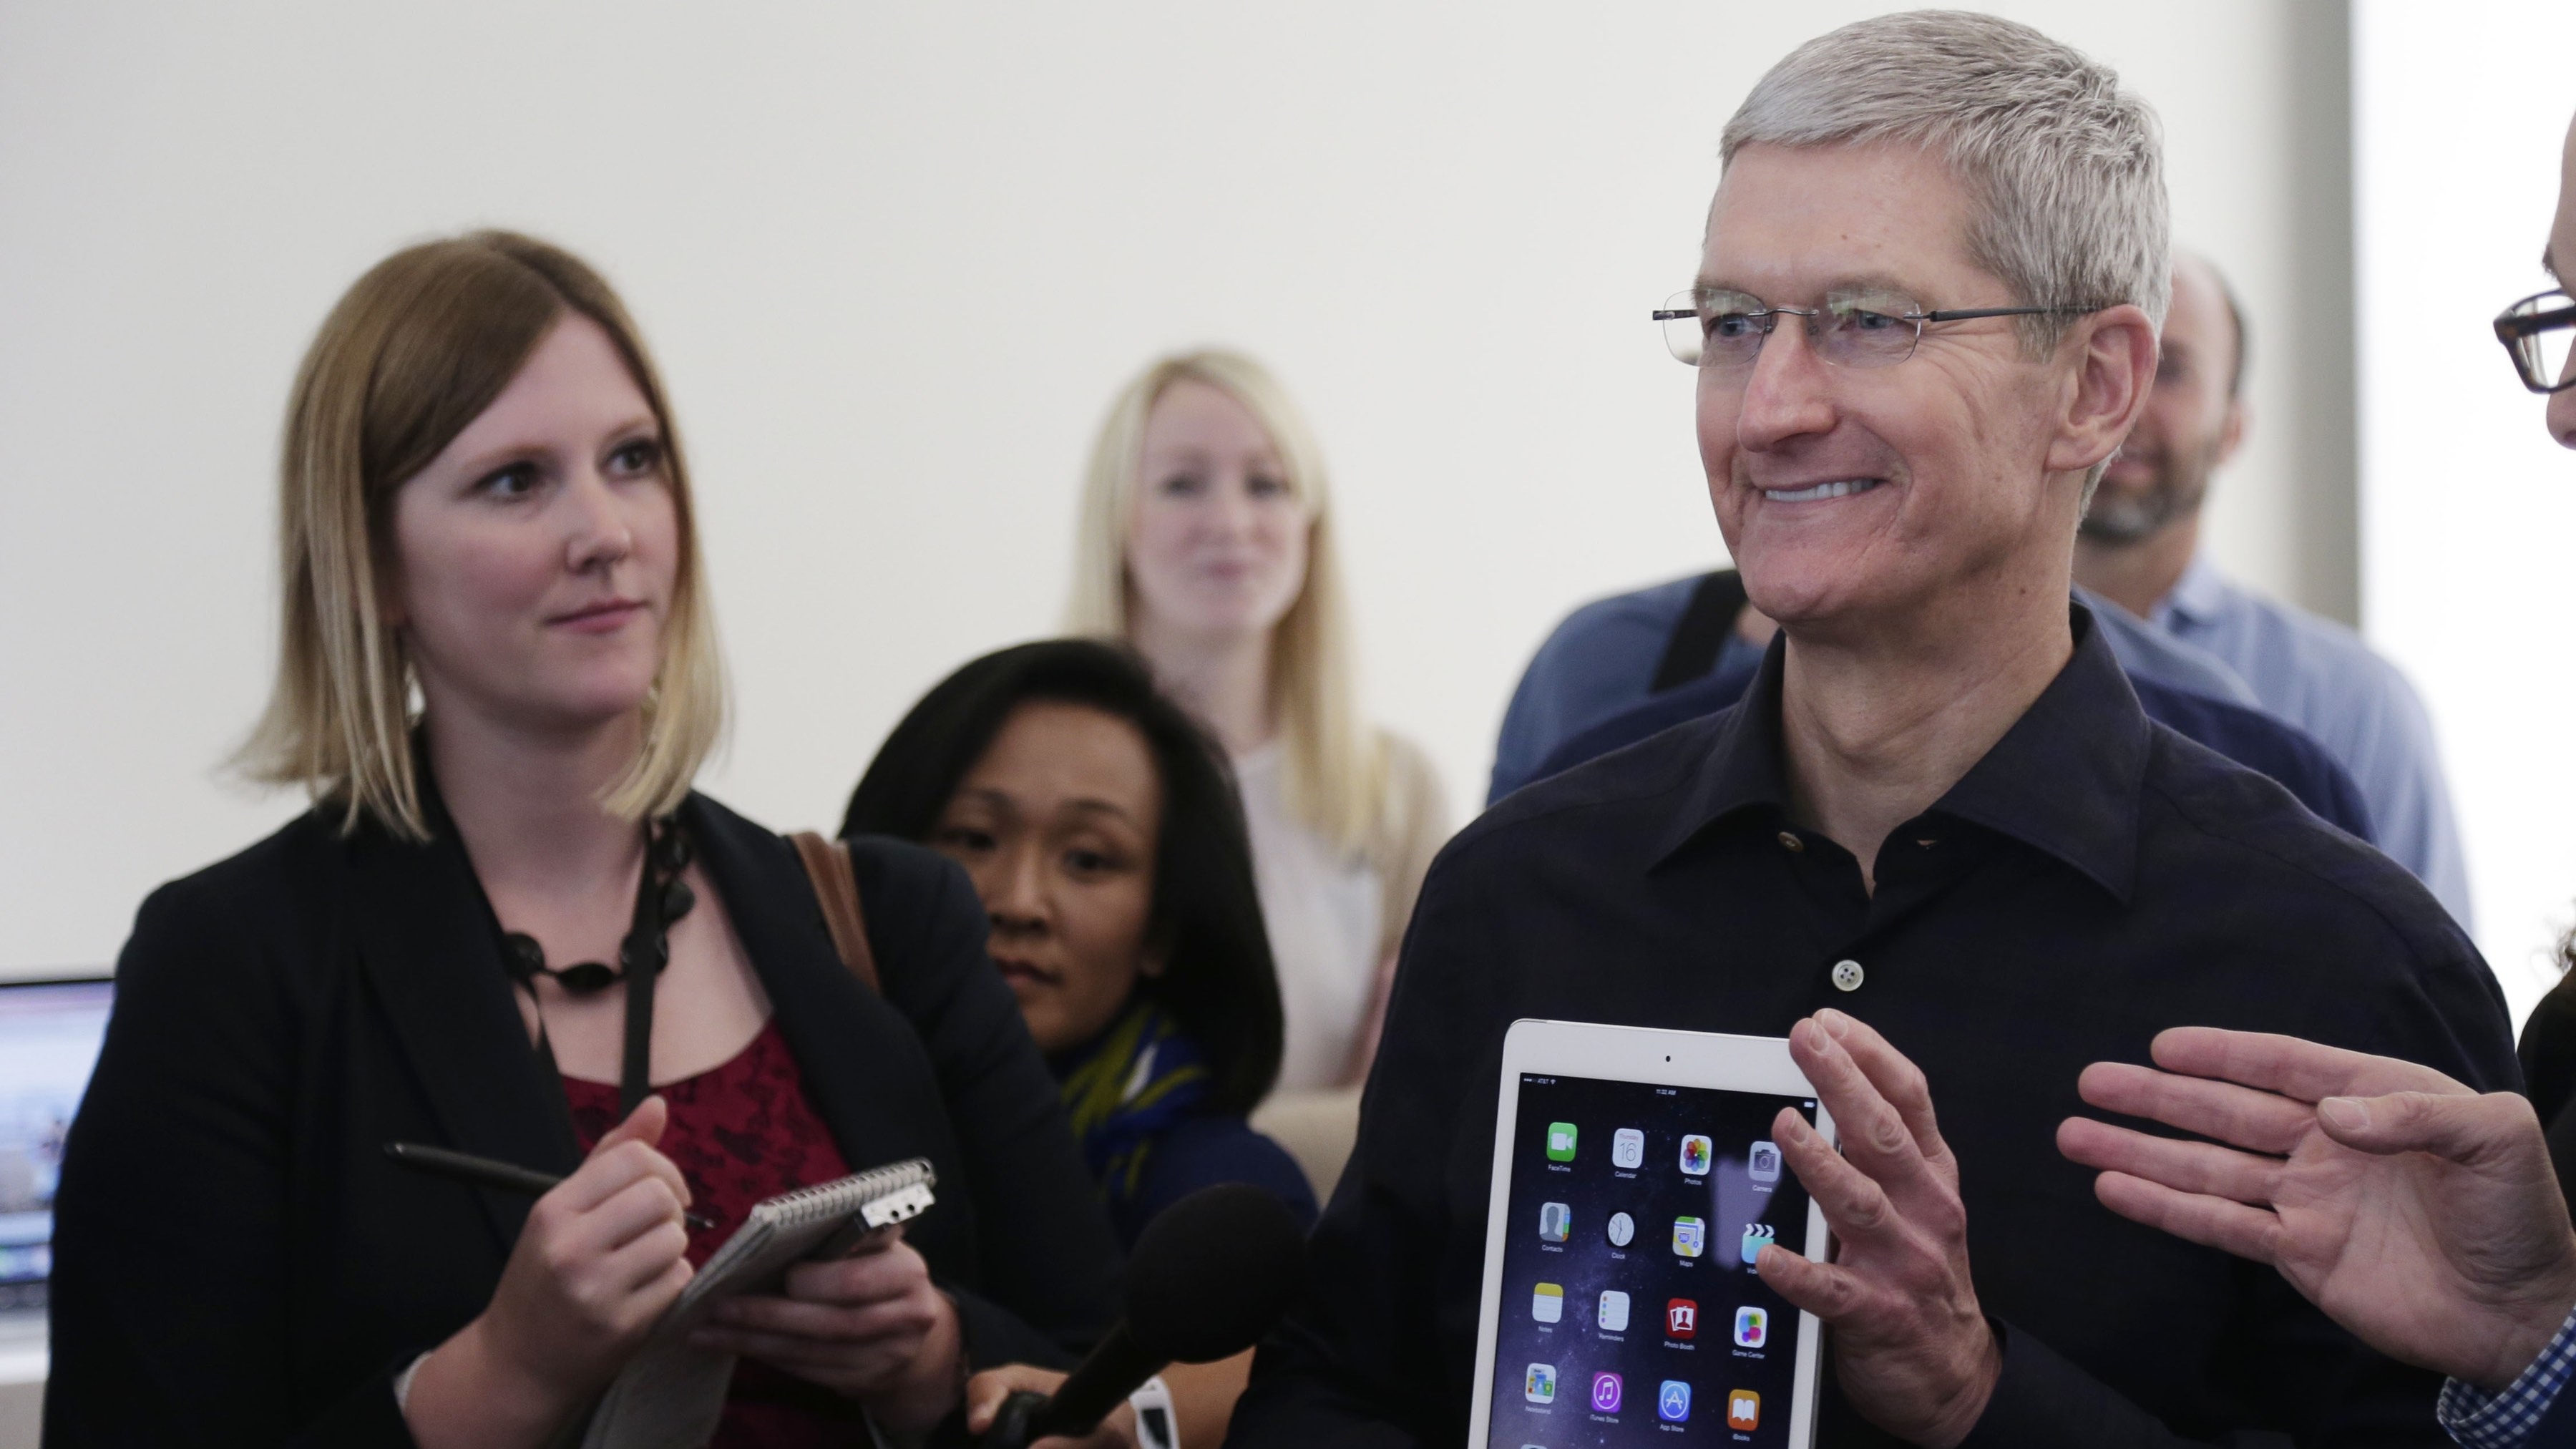 Apple CEO Tim Cook display the new iPad Air 2 at Apple headquarters on Thursday, Oct. 16, 2014 in Cupertino, Calif. Apple unveiled the thinner iPad with a faster processor and a better camera as it tries to drive excitement for tablets amid slowing demand. (AP Photo/Marcio Jose Sanchez)